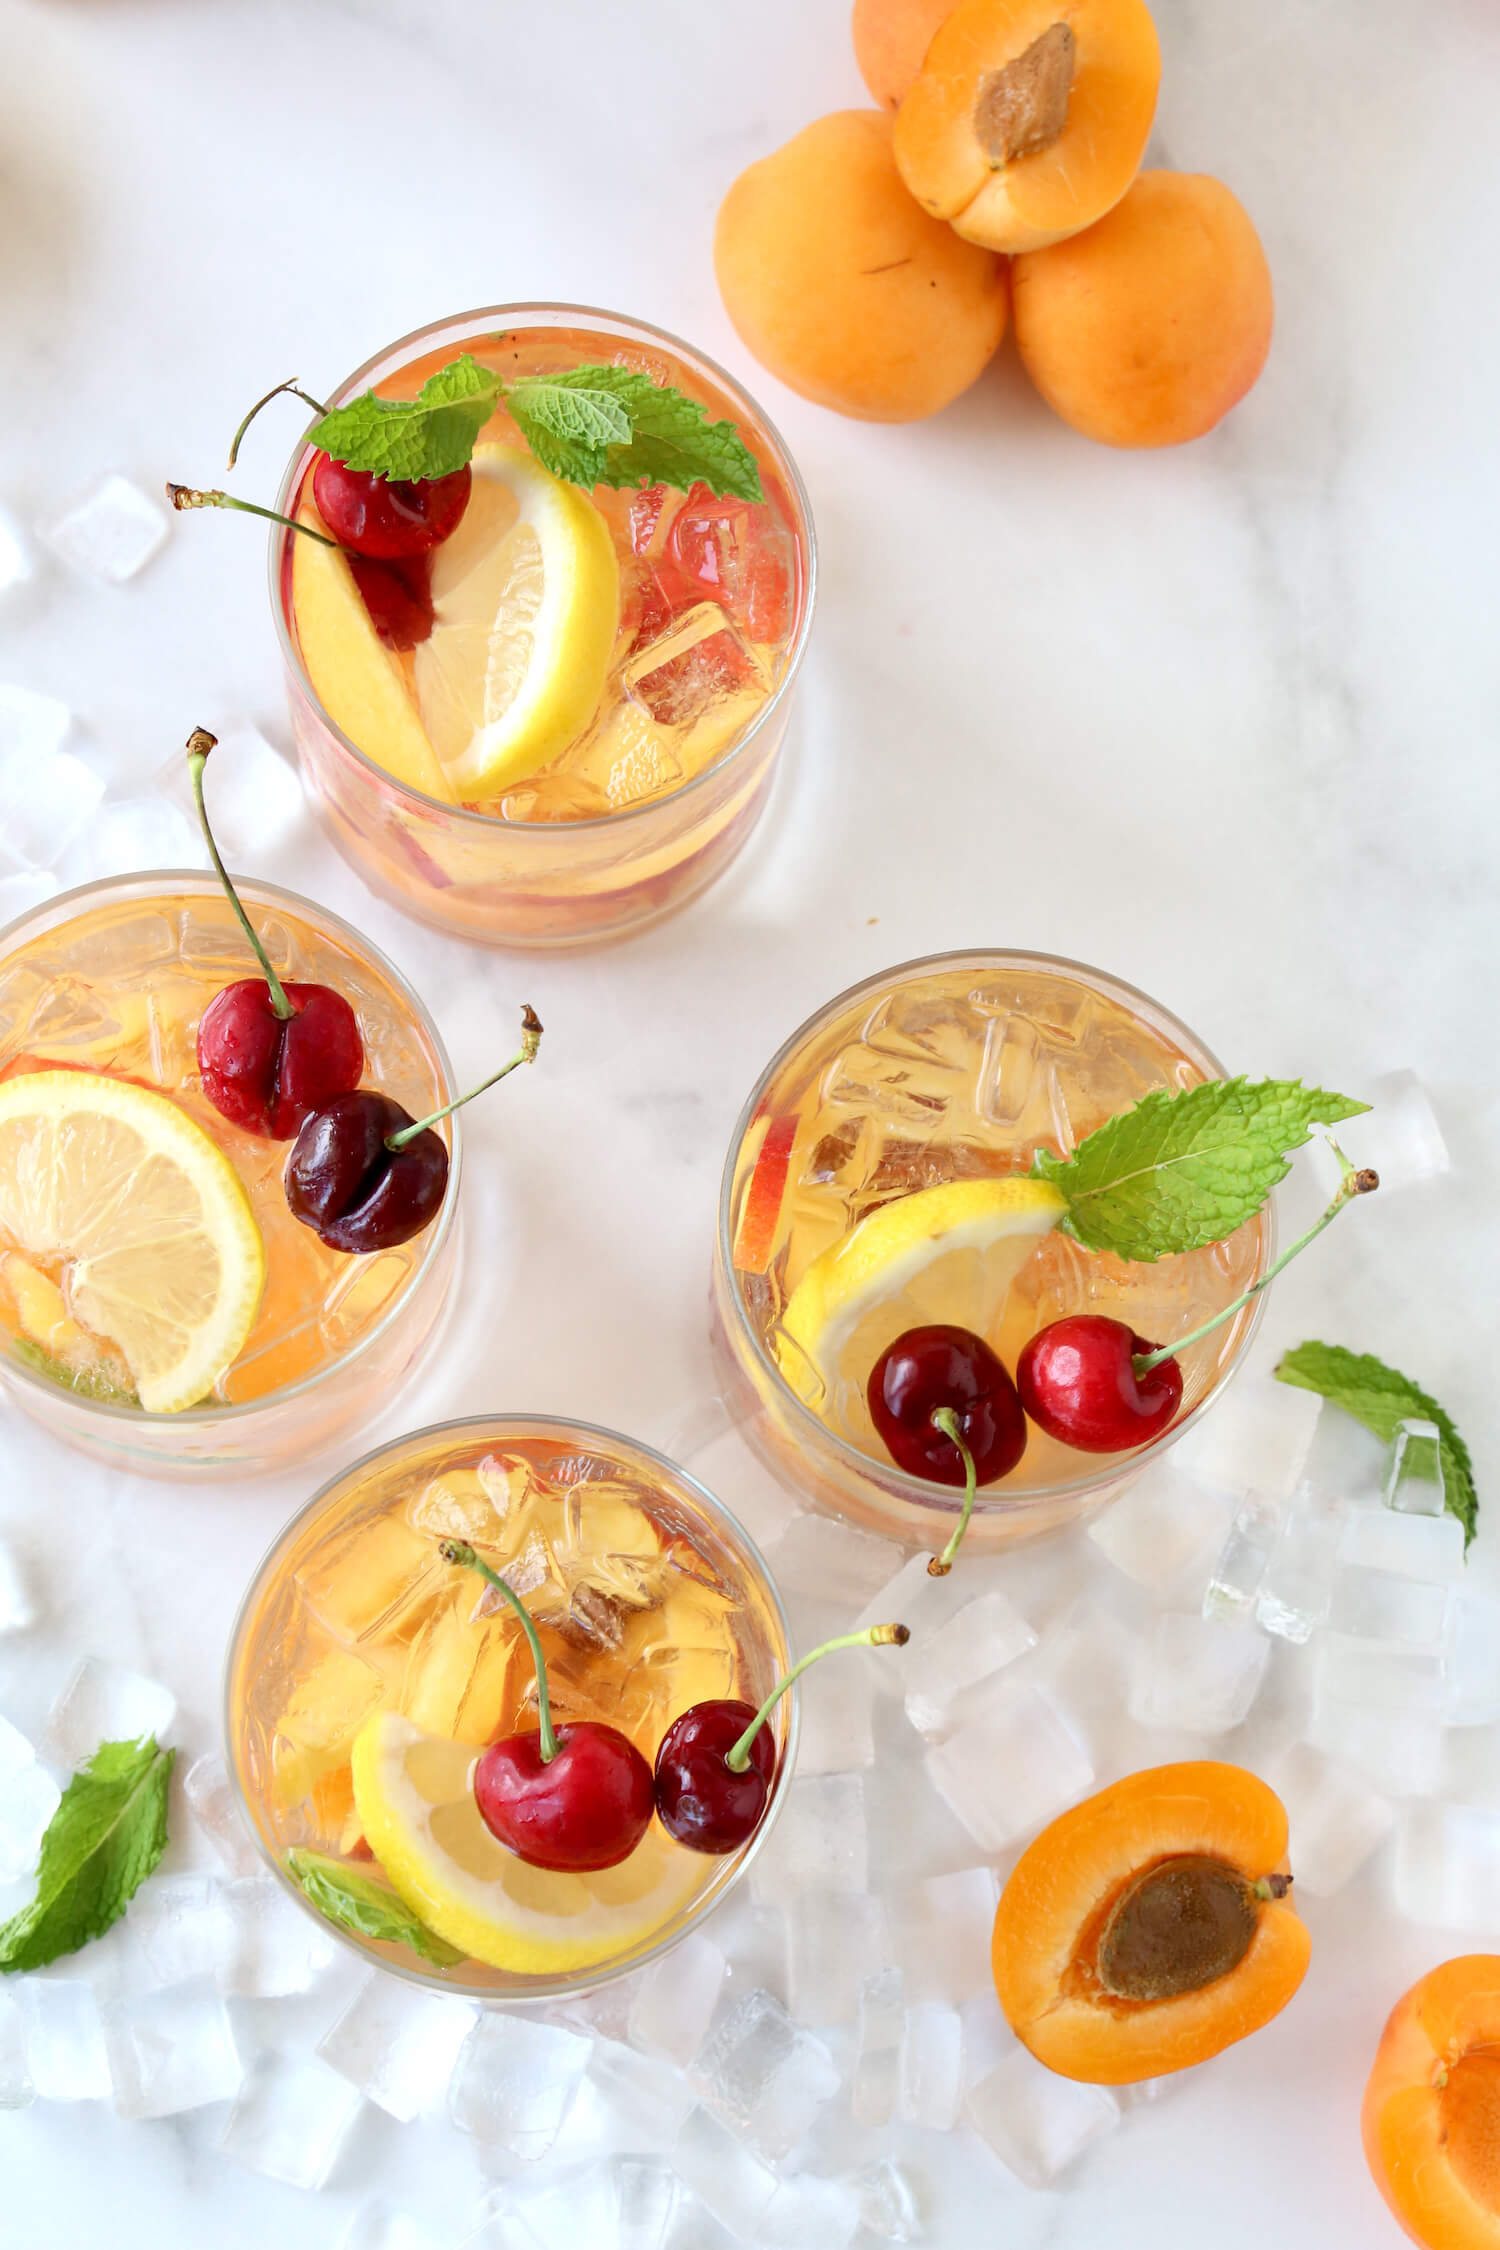 An overhead view ofFour glasses filled with rose wine, cherries, lemons, nectarines and apricots.